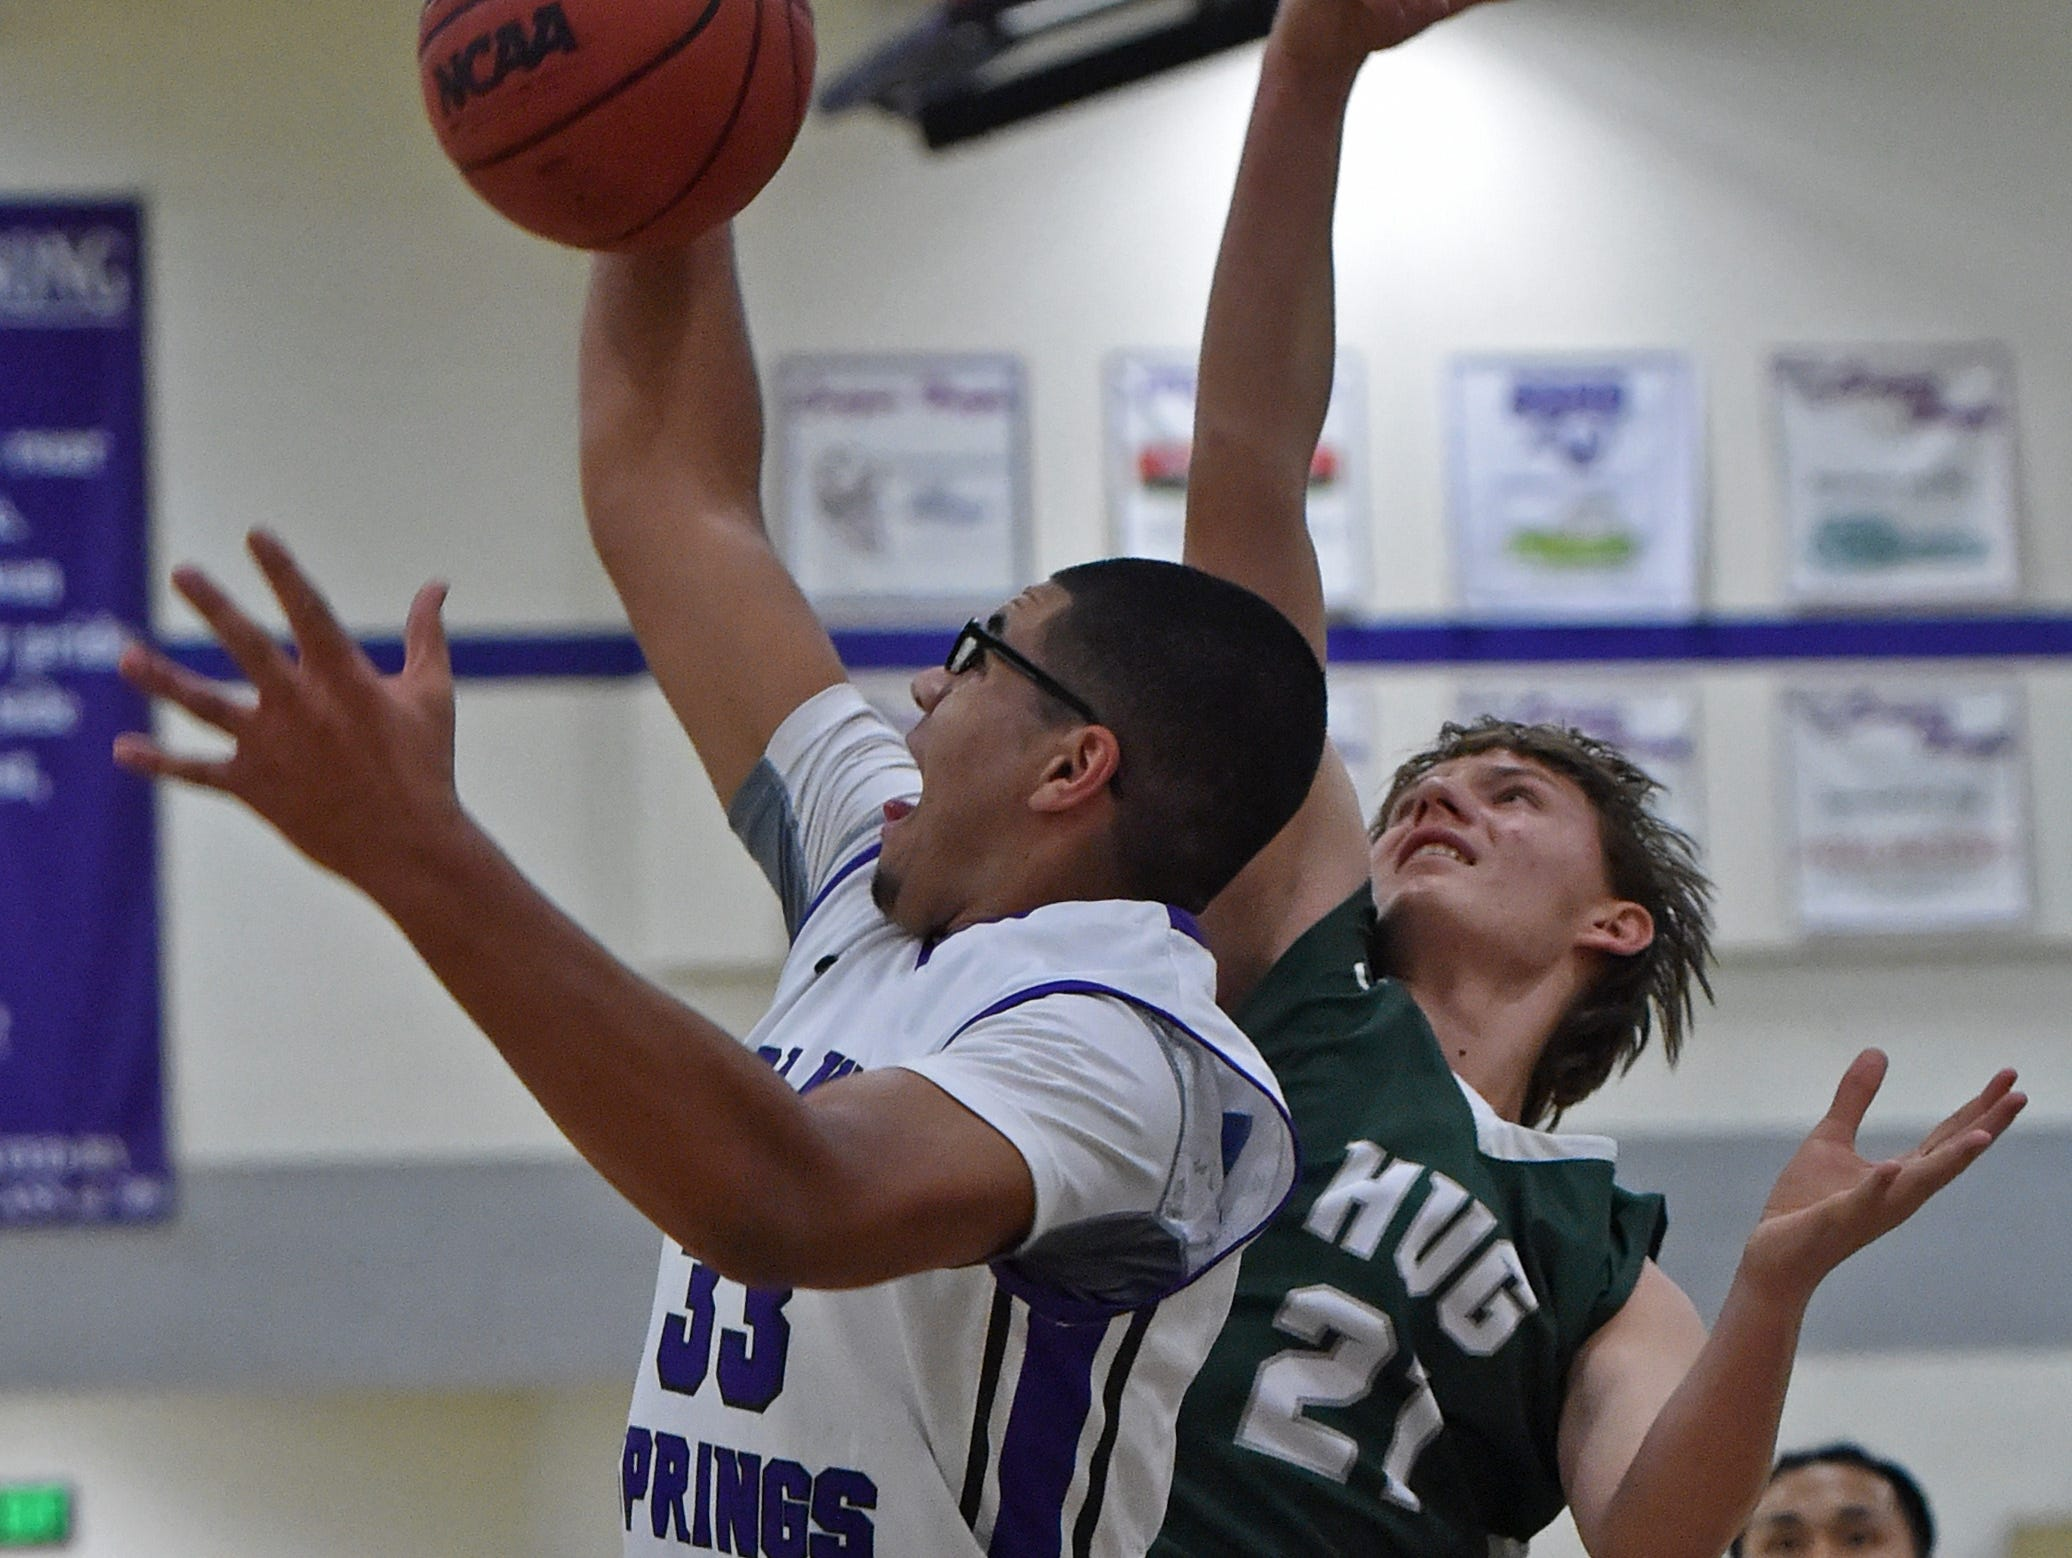 Spanish Springs' Marcus Loadholt beats Hug's Drake Newman to a rebound during the first half of Tuesday's game at Spanish Springs